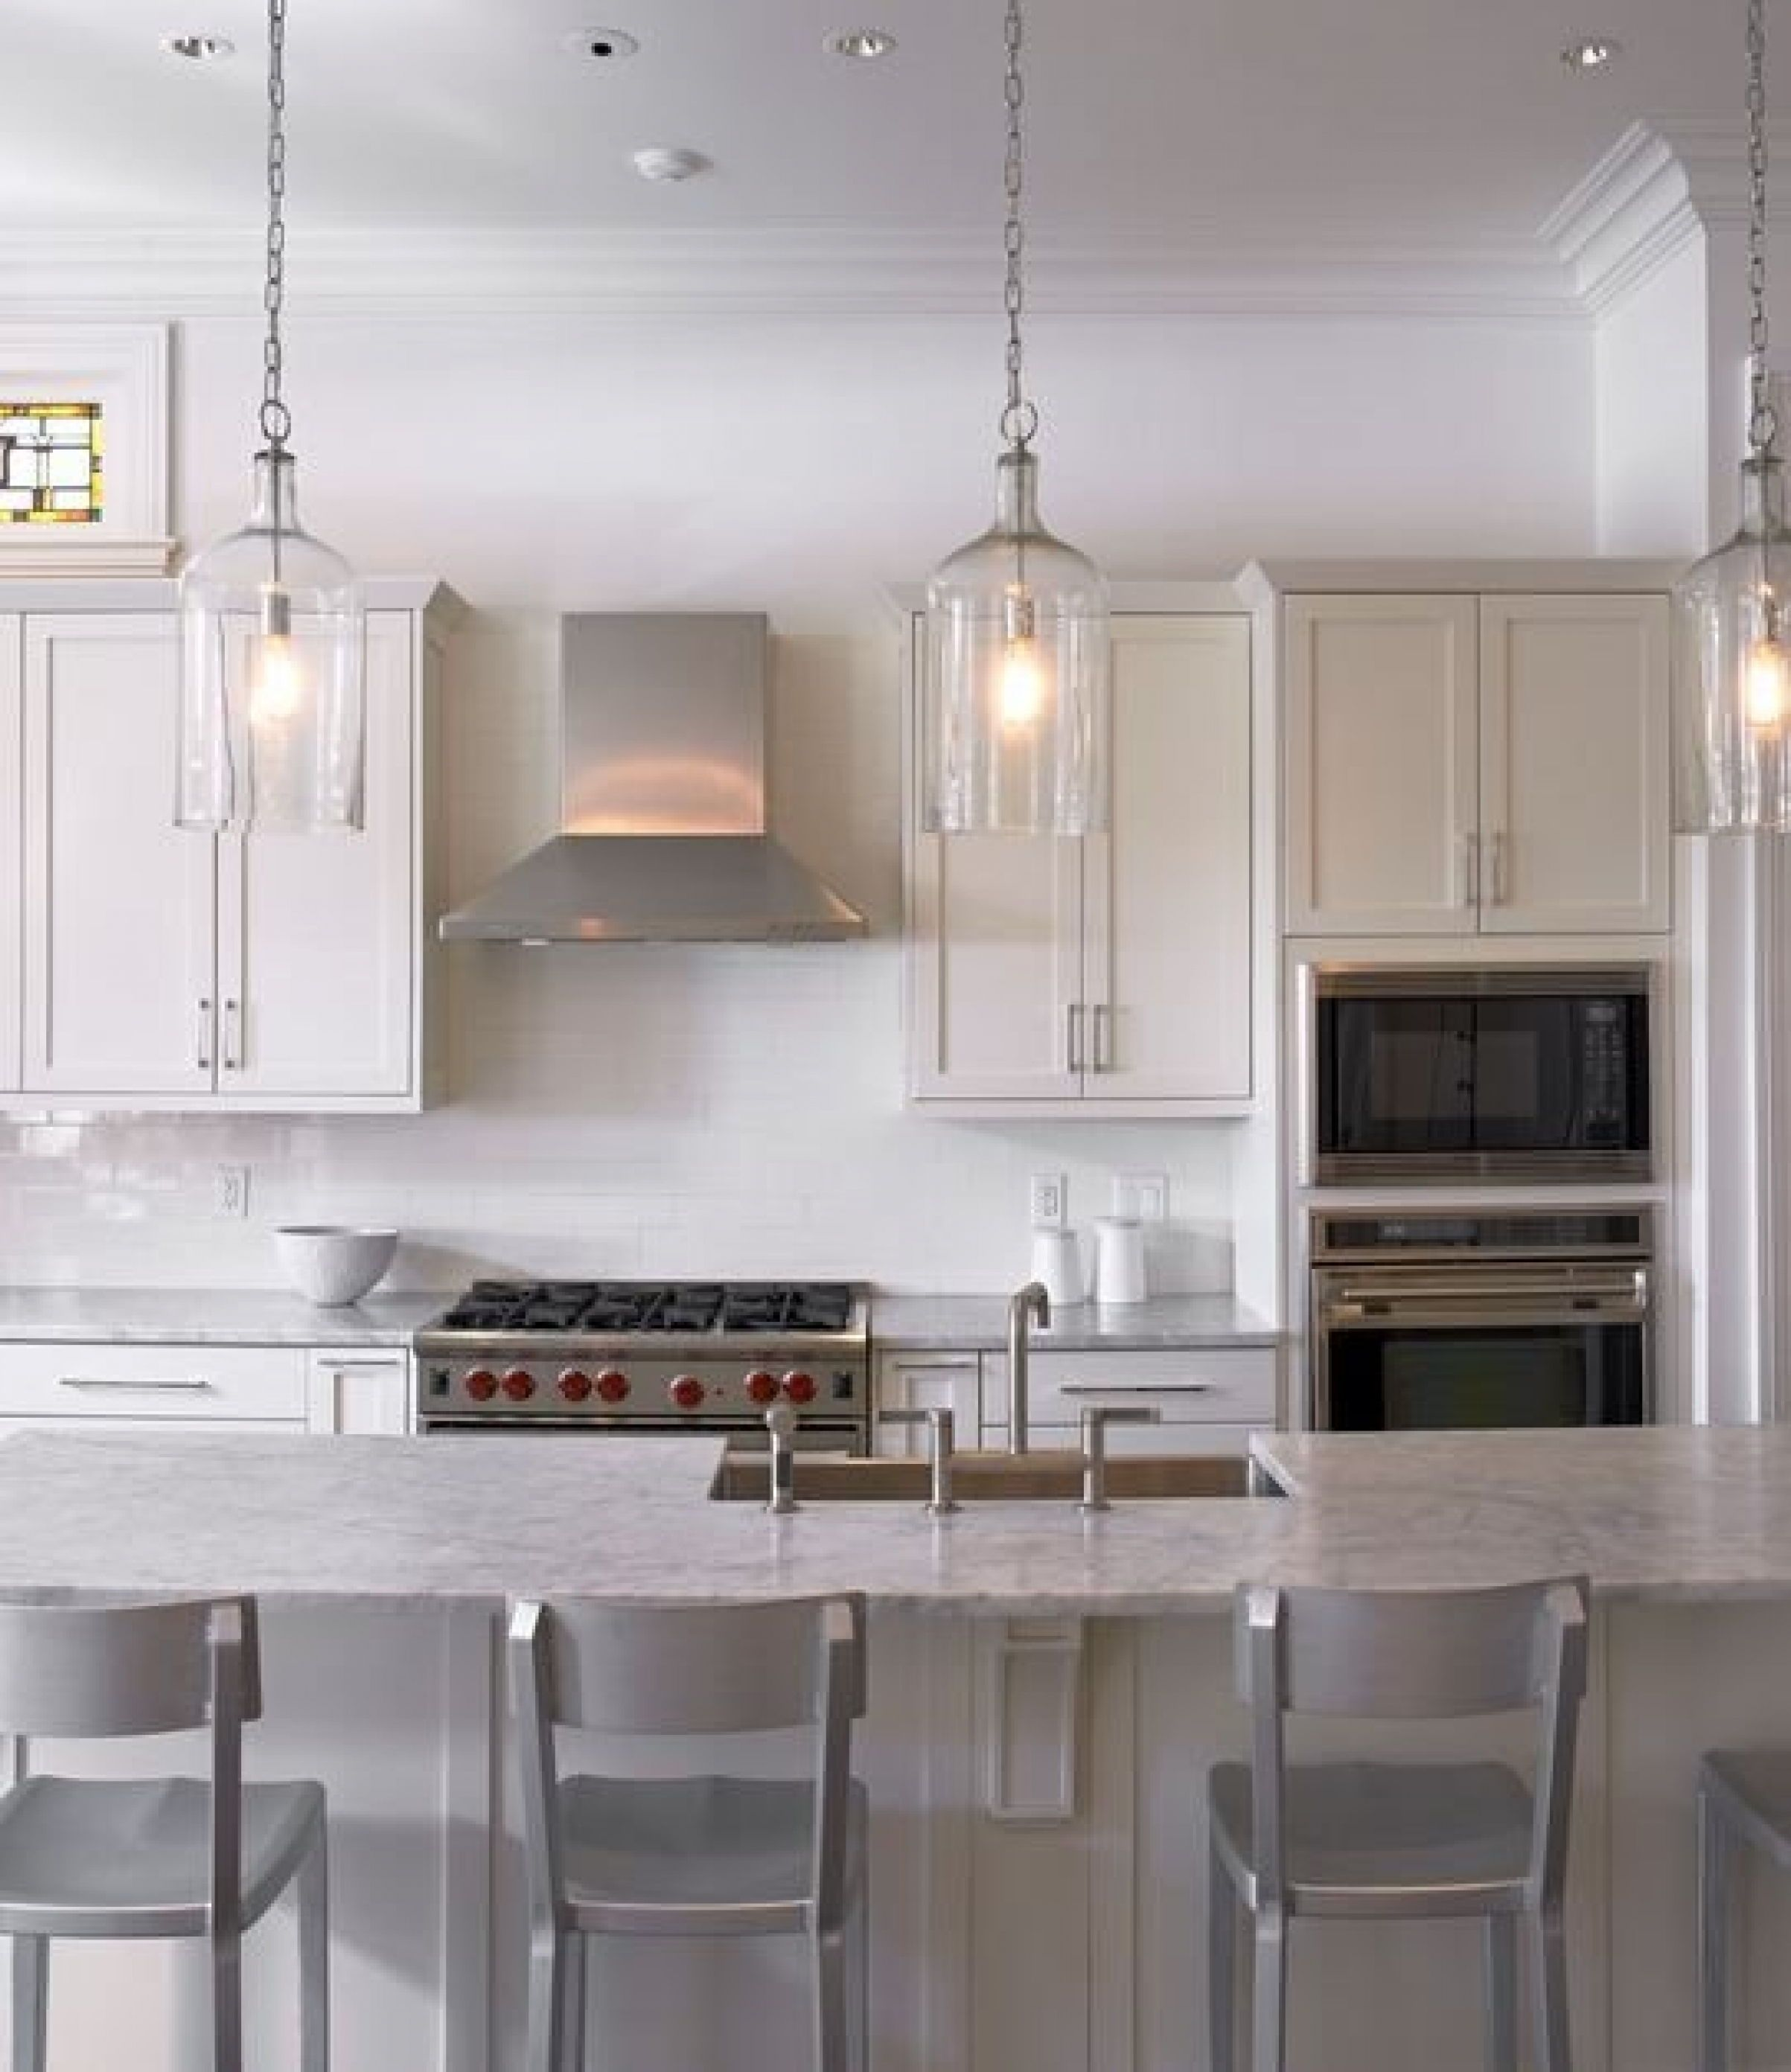 Pin On Kitchen Island Pendant Lighting Ideas